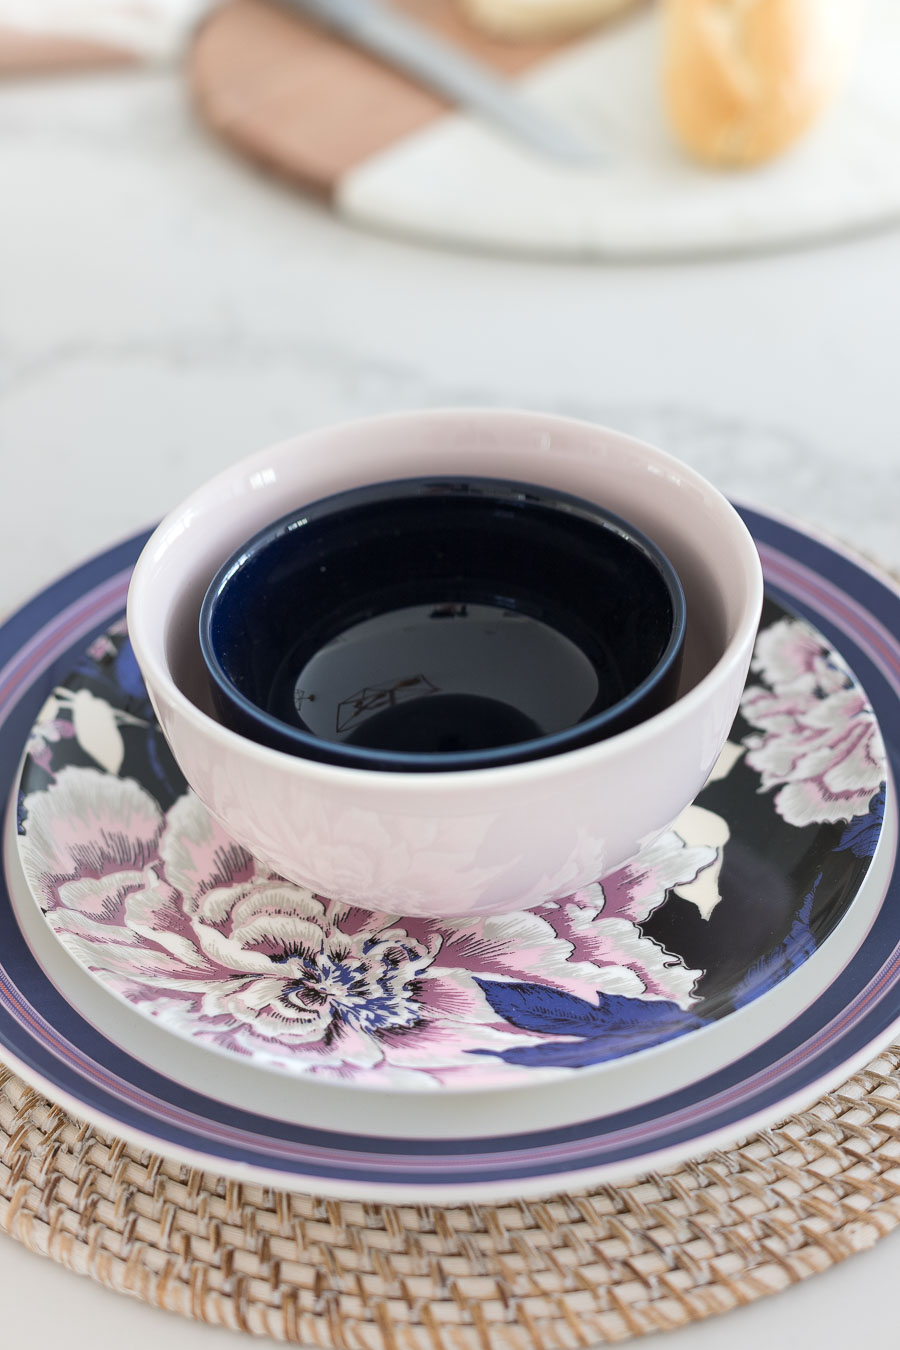 Love this gorgeous dinnerware from Drew Barrymore's Flower Home collection!